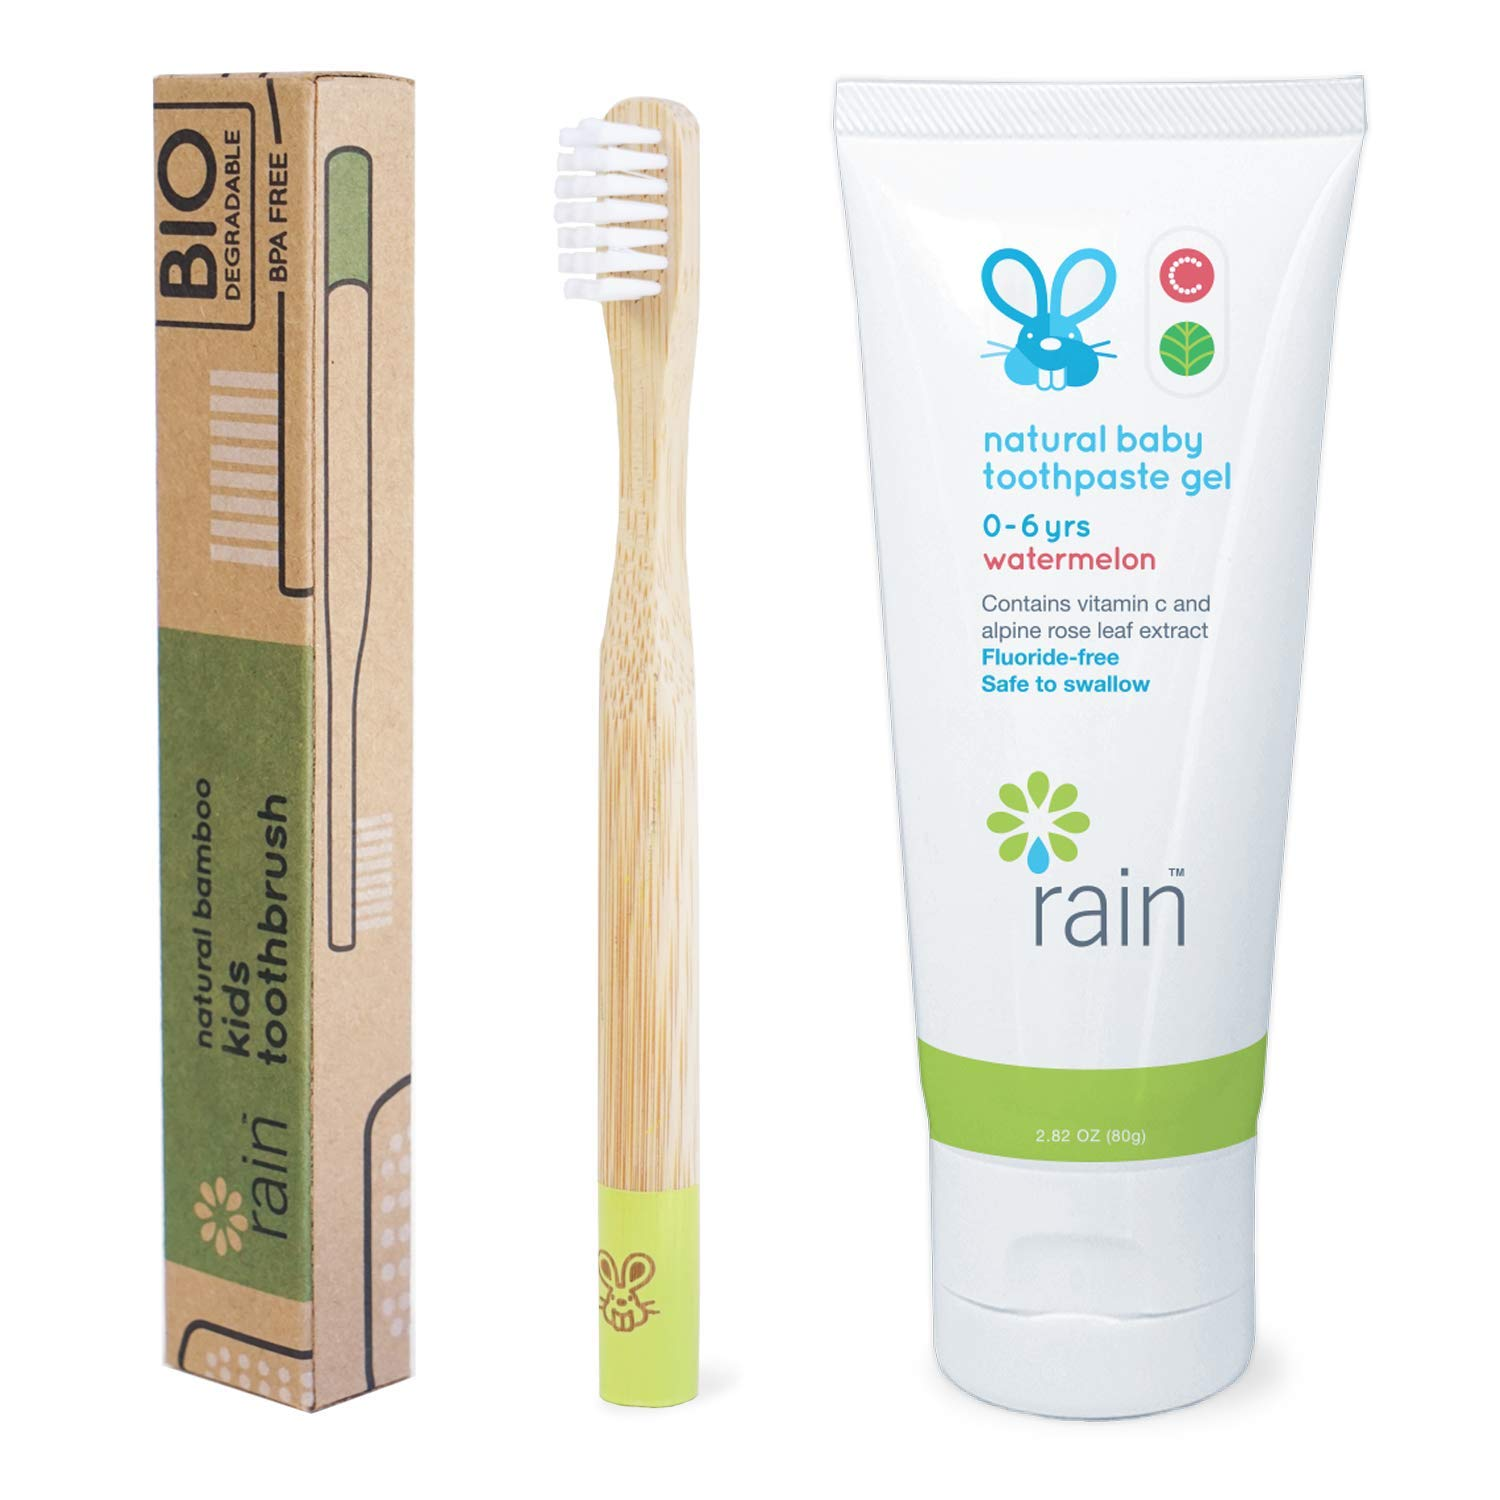 1 Toothbrush 1 Toothpaste Natural Bamboo Baby Toothbrush Set Fluoride-Free Toothpaste Safe to Swallow Vitamin C Enriched for 6 to 12 Months and Up Infant Toddler Toothbrush BPA-Free Biodegradable